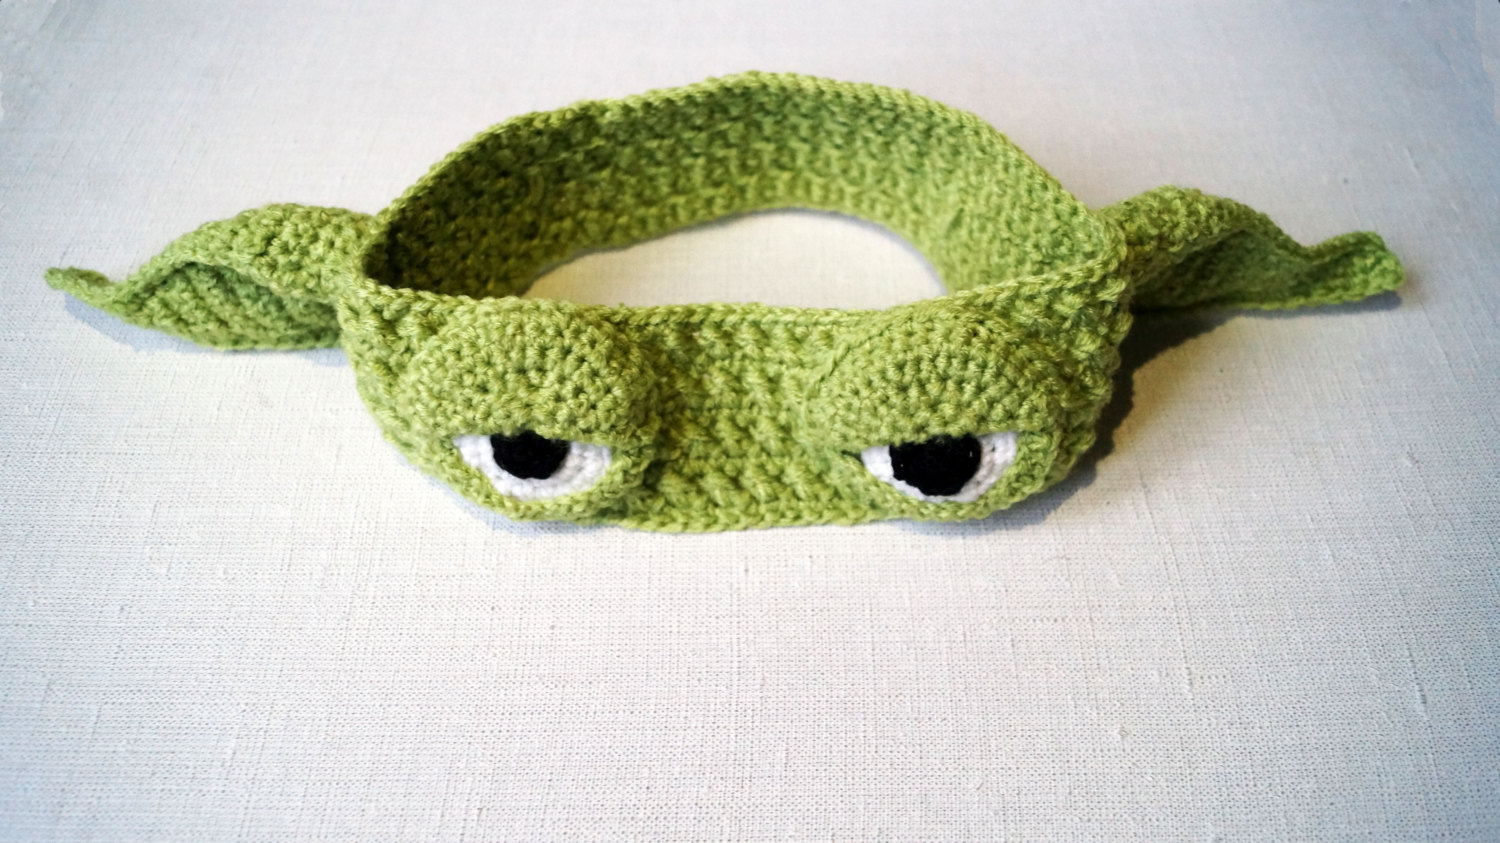 Amigurumi Star Wars Patterns : Yoda headband crochet pattern pdf star wars jedi apparel just